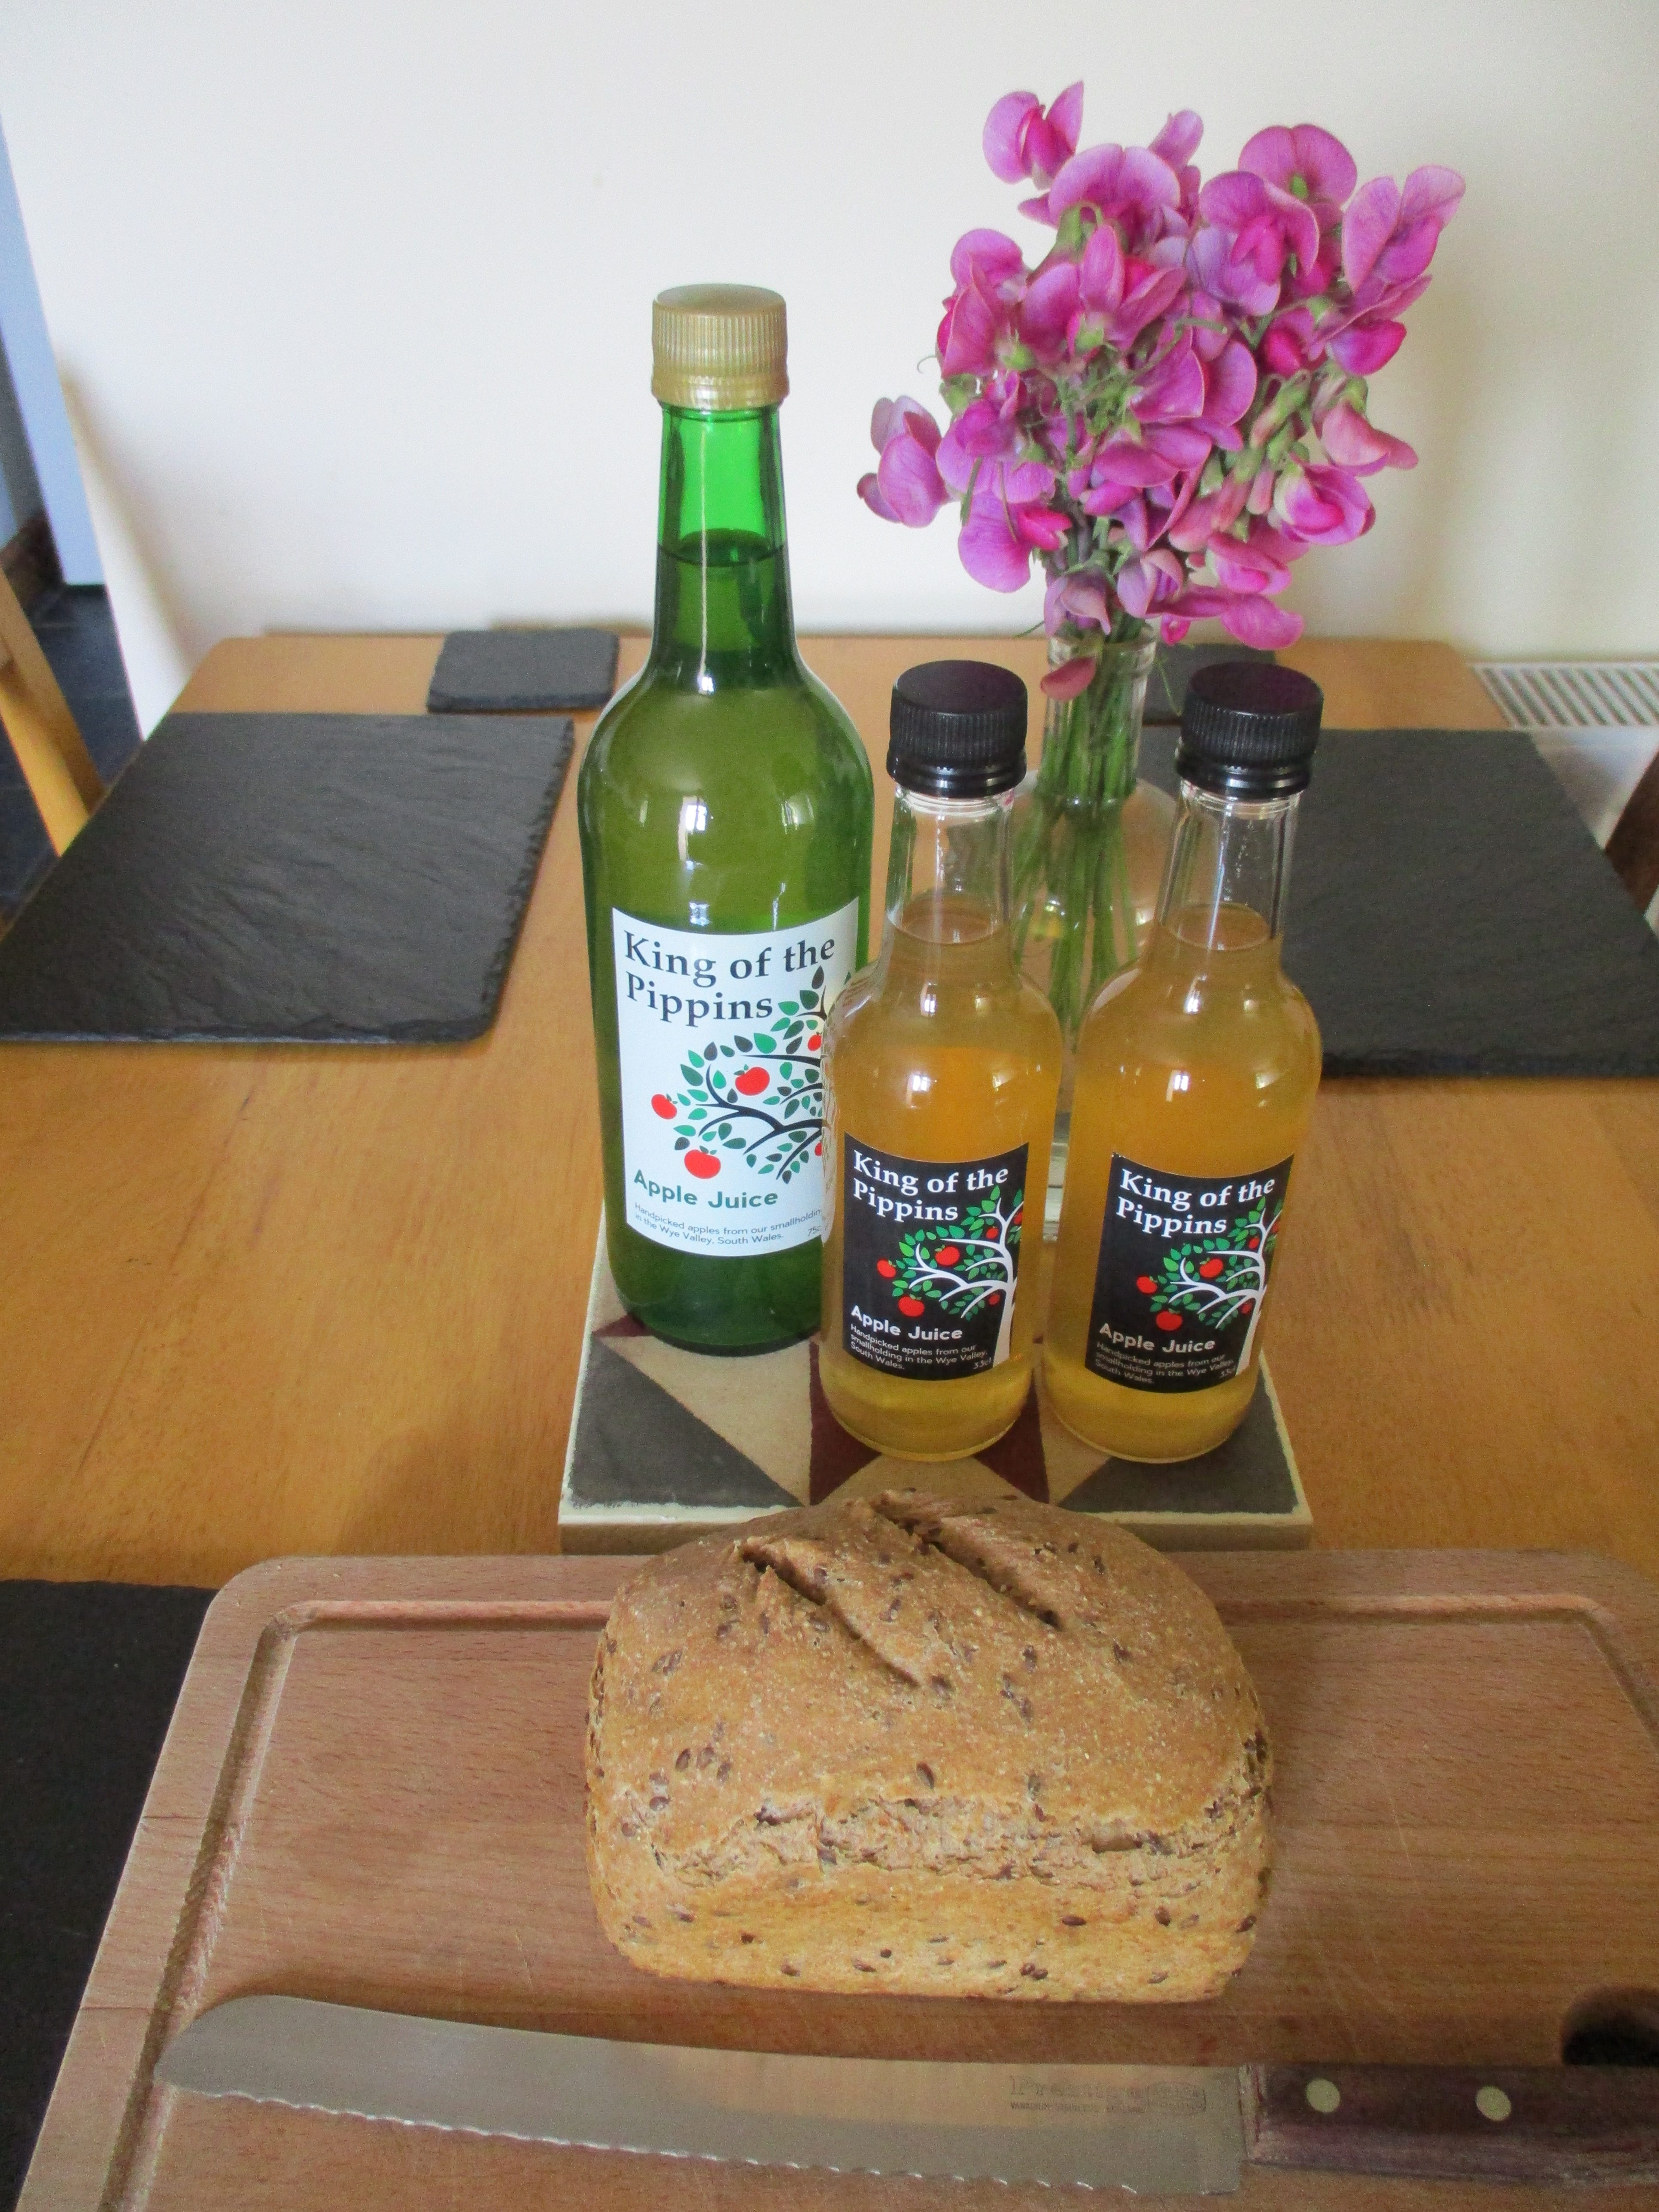 We welcome guests with complimentary home-made bread and apple juice from our orchard